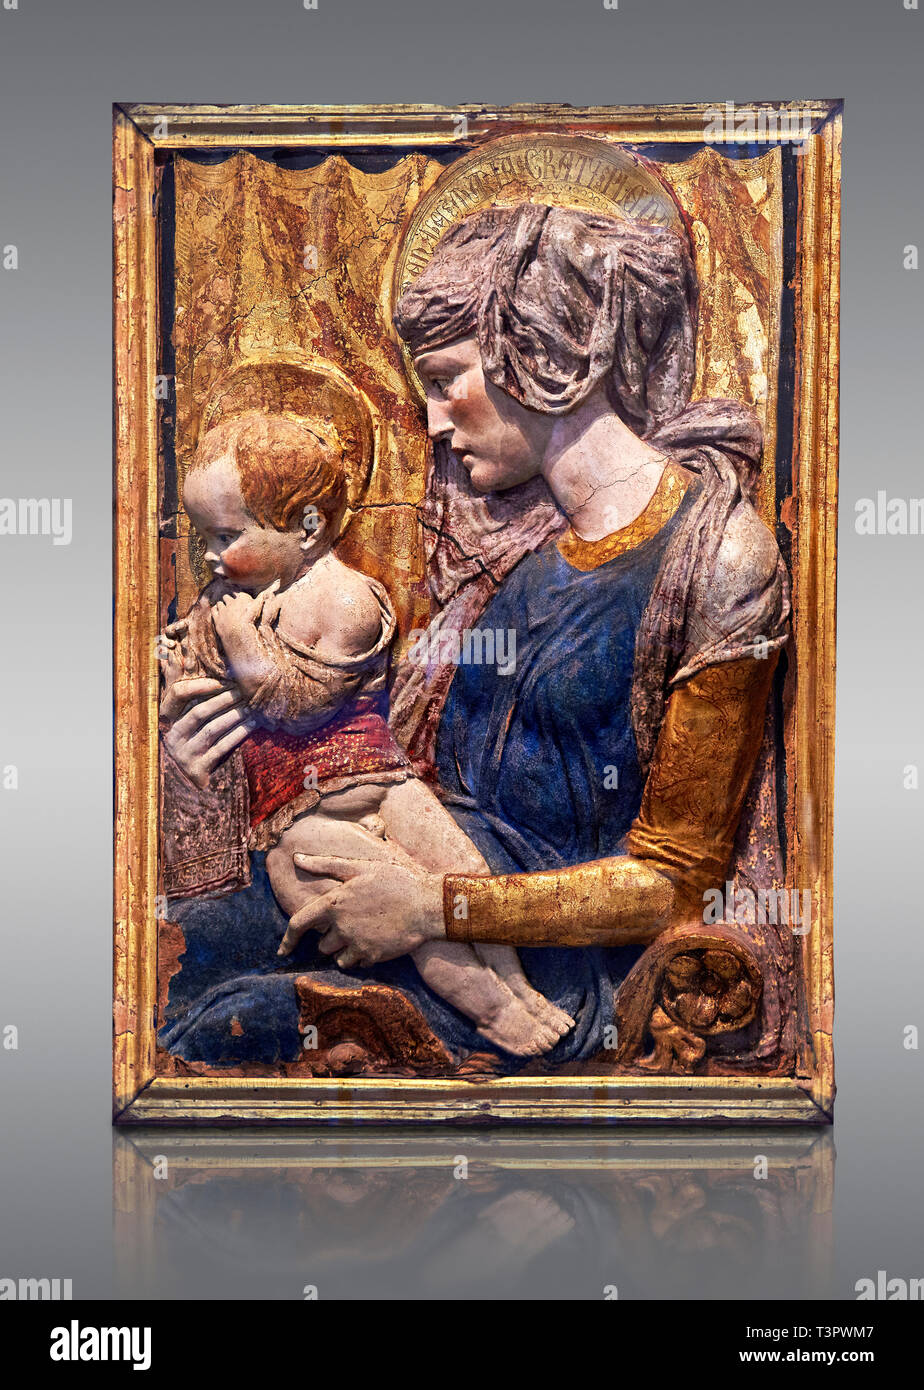 Painted terracotta relief panel depicting the Virgin and Child by Niccolo Bardi better known as Donatello. Made in Florence around 1386. Inv RF 353, T Stock Photo